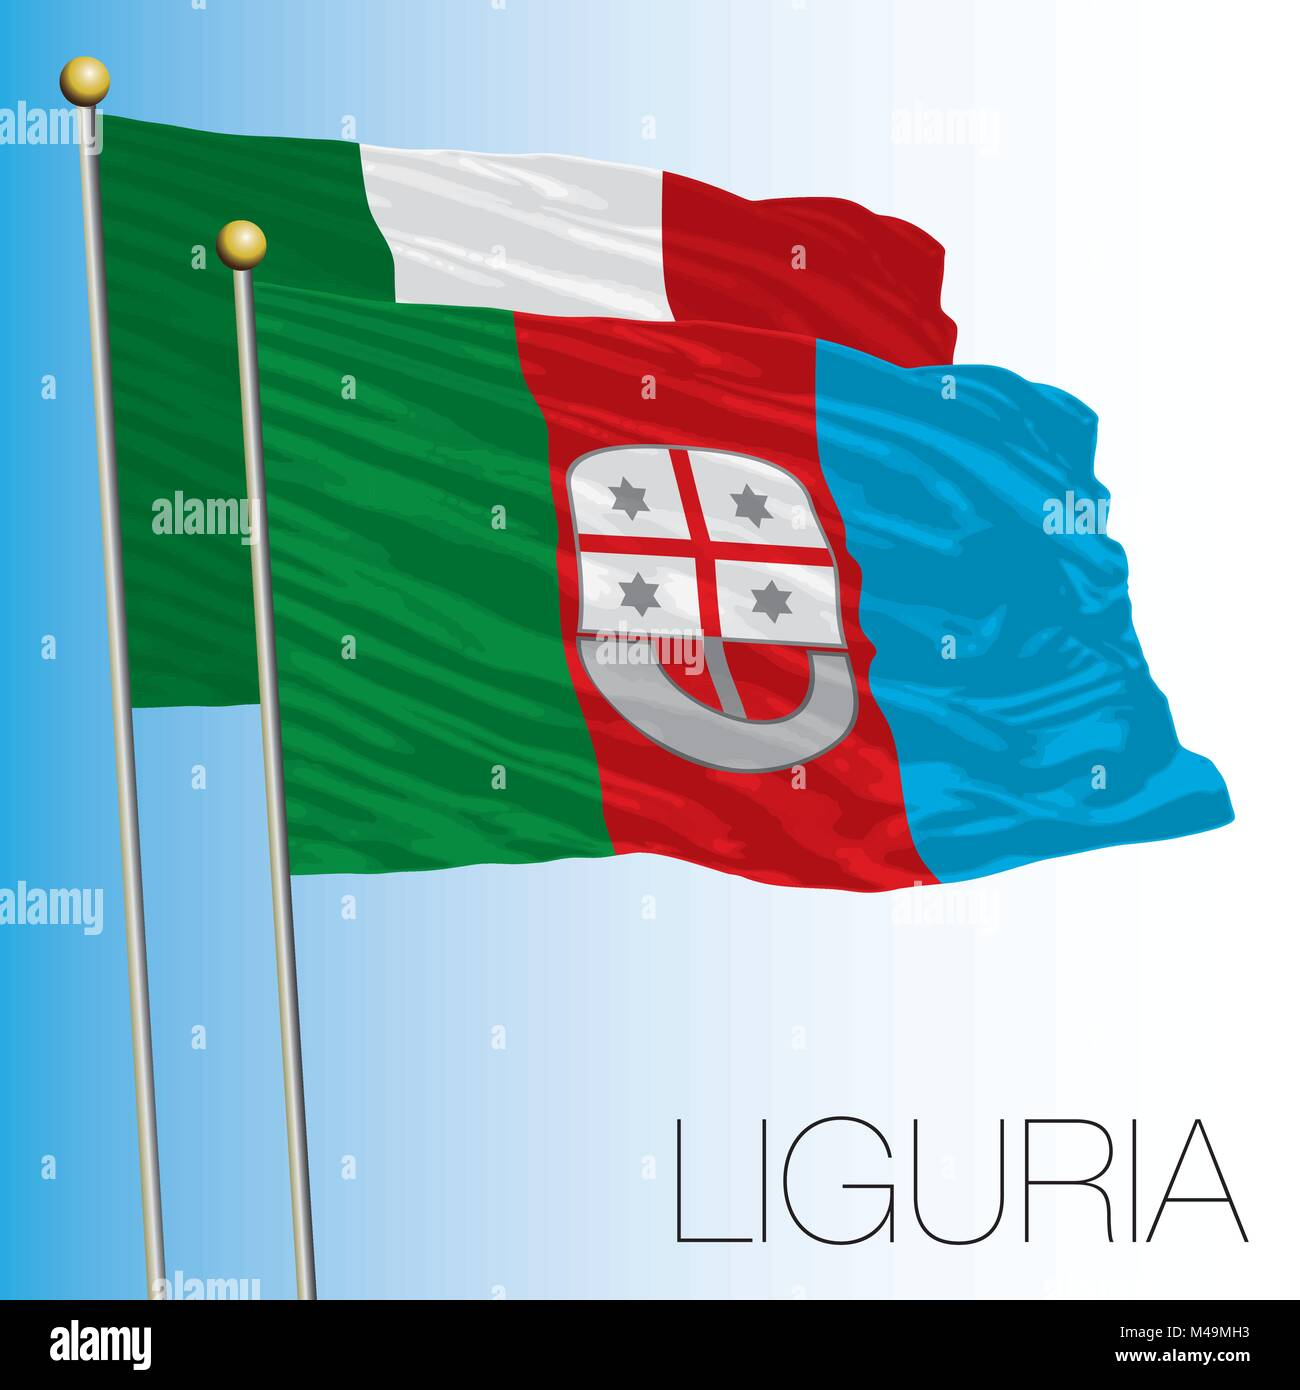 Liguria regional flag, Italian Republic, Italy, European Union - Stock Vector